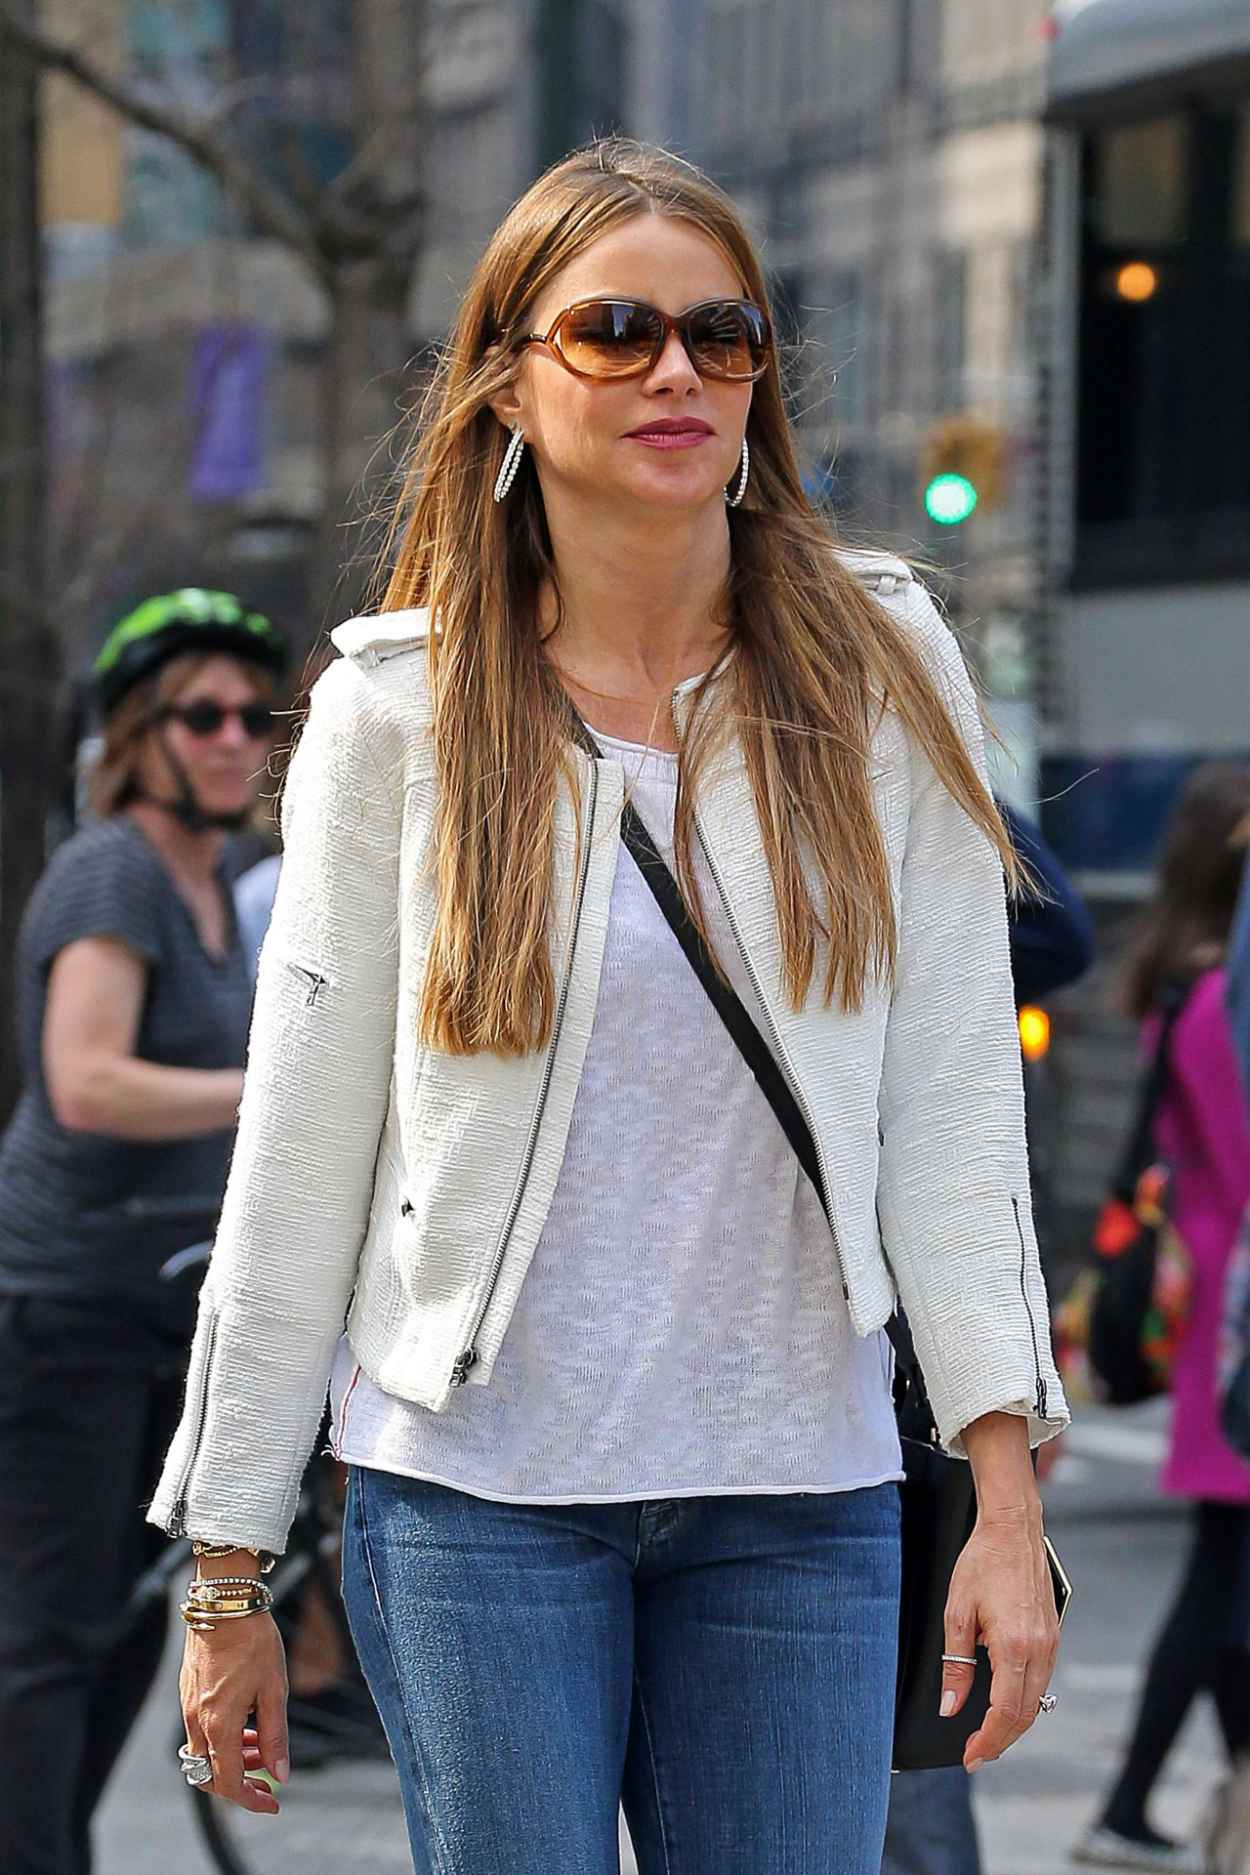 Sofia Vergara in Jeans - Out in New York City - April 2015-1